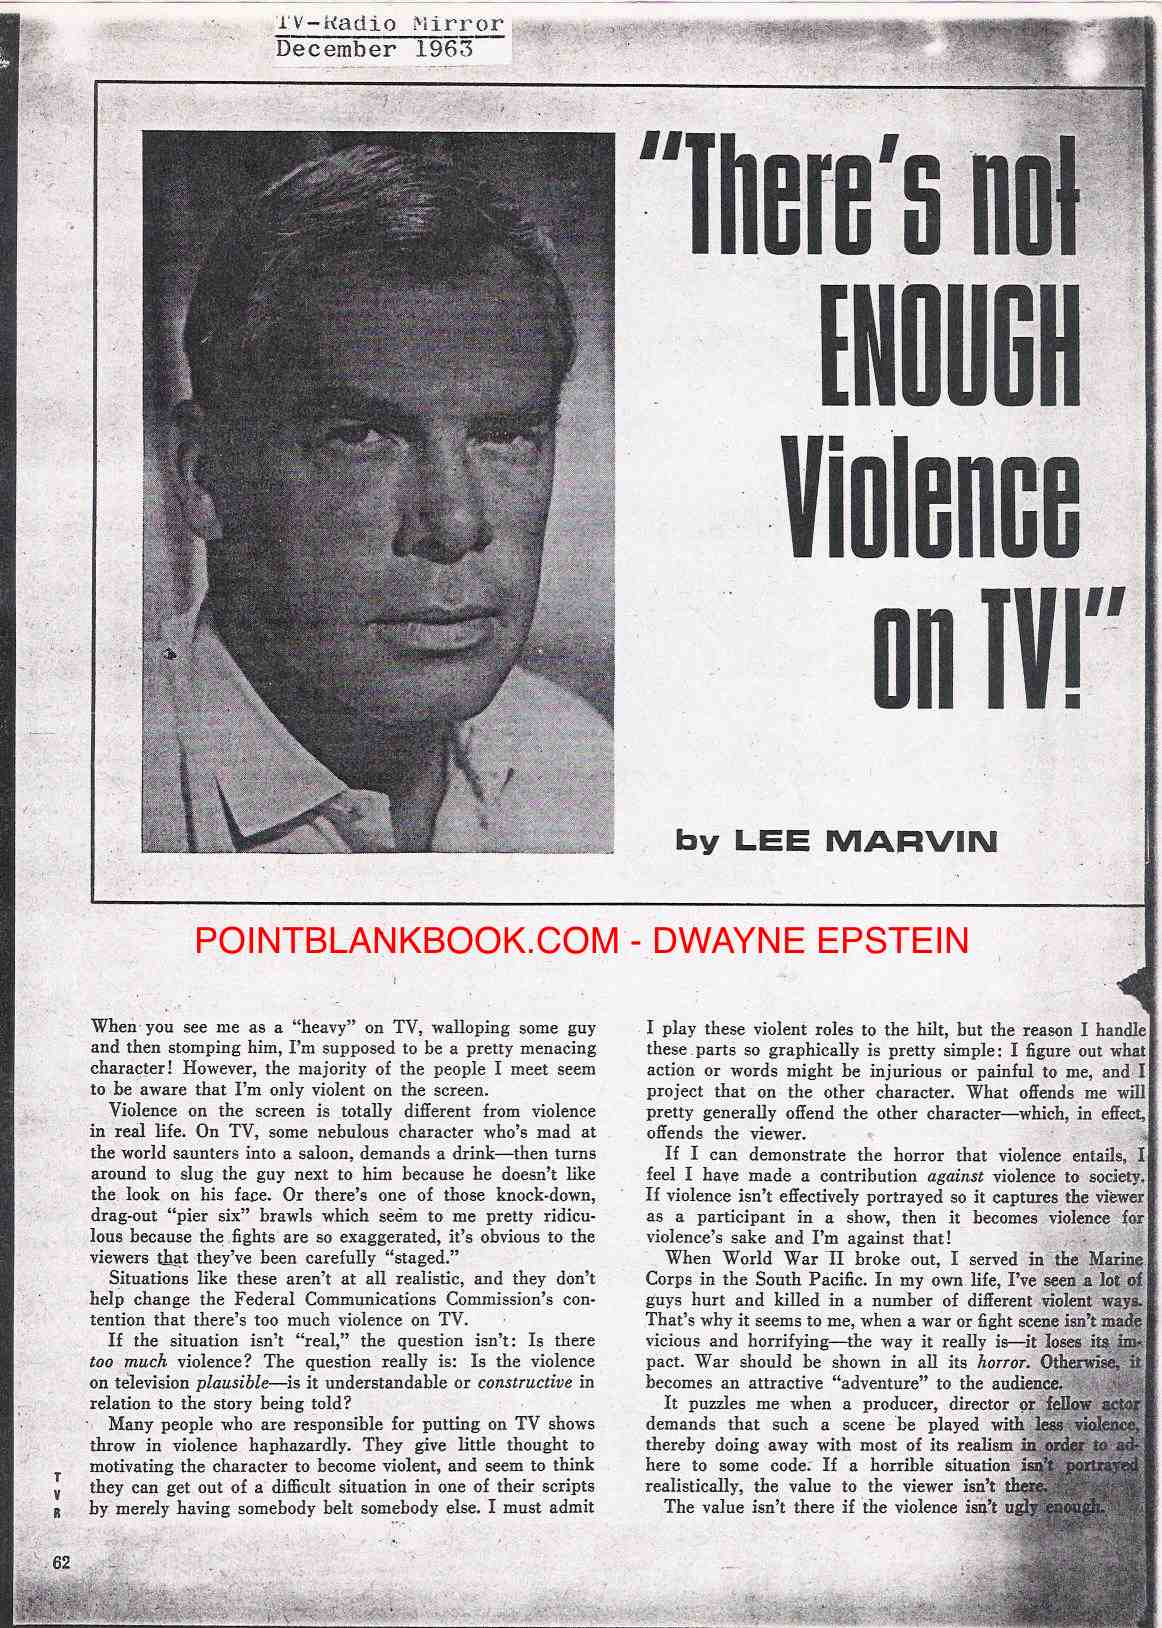 Part 1 of Peter Levinson's ghosted TV violence article for Lee Marvin.